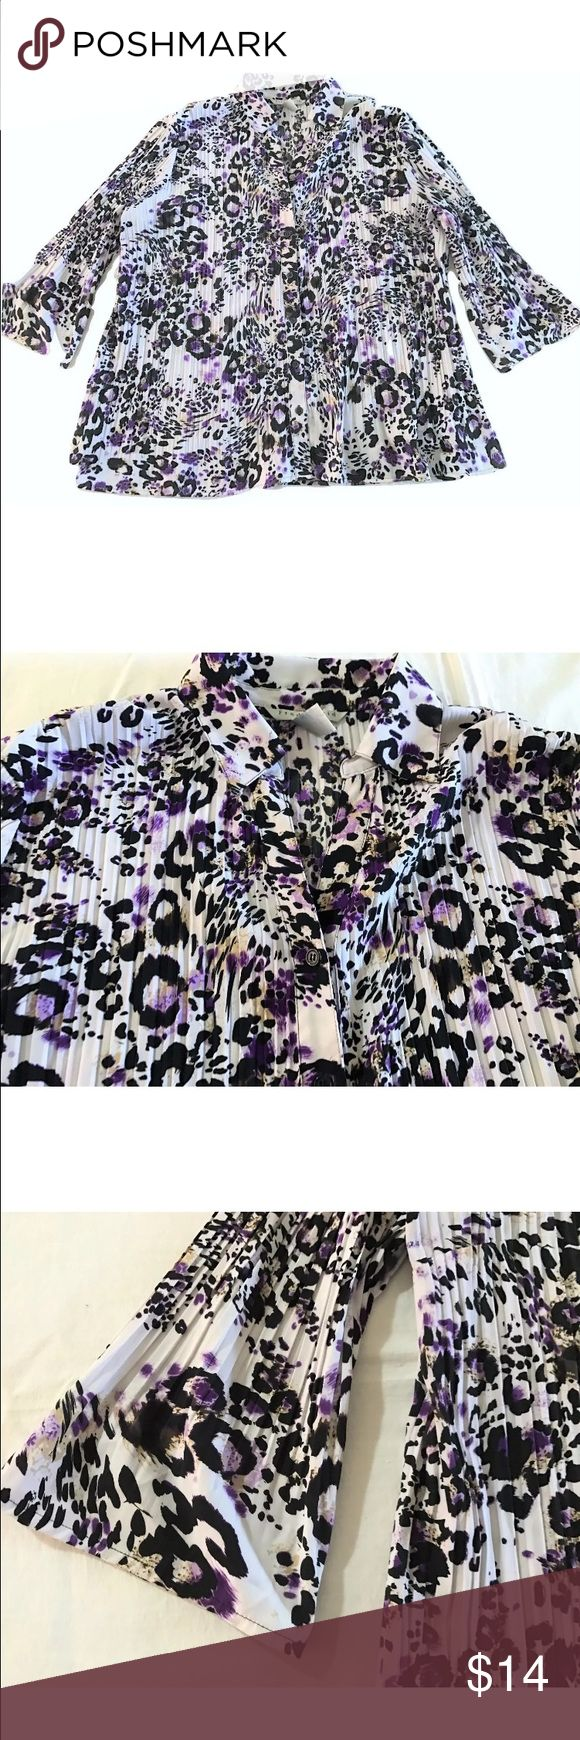 Plus Size Crinkle Blouse Fred David Woman Plus Size Accordion Crinkle Blouse SIZE 22/24  In very gently used, overall very good, very clean condition.  Accrodion crinkle stretch fabric, in a fun purple black animal print on a white background Button front, with a V opening left at the top, with no bouttons Collard 3/4 lightly belled sleeves Size: 22/24 Bust: 54 inches around unstretched Length: 27 inches  97% Polyester, 3% Spandex Thank you so much! Fred David Tops Blouses